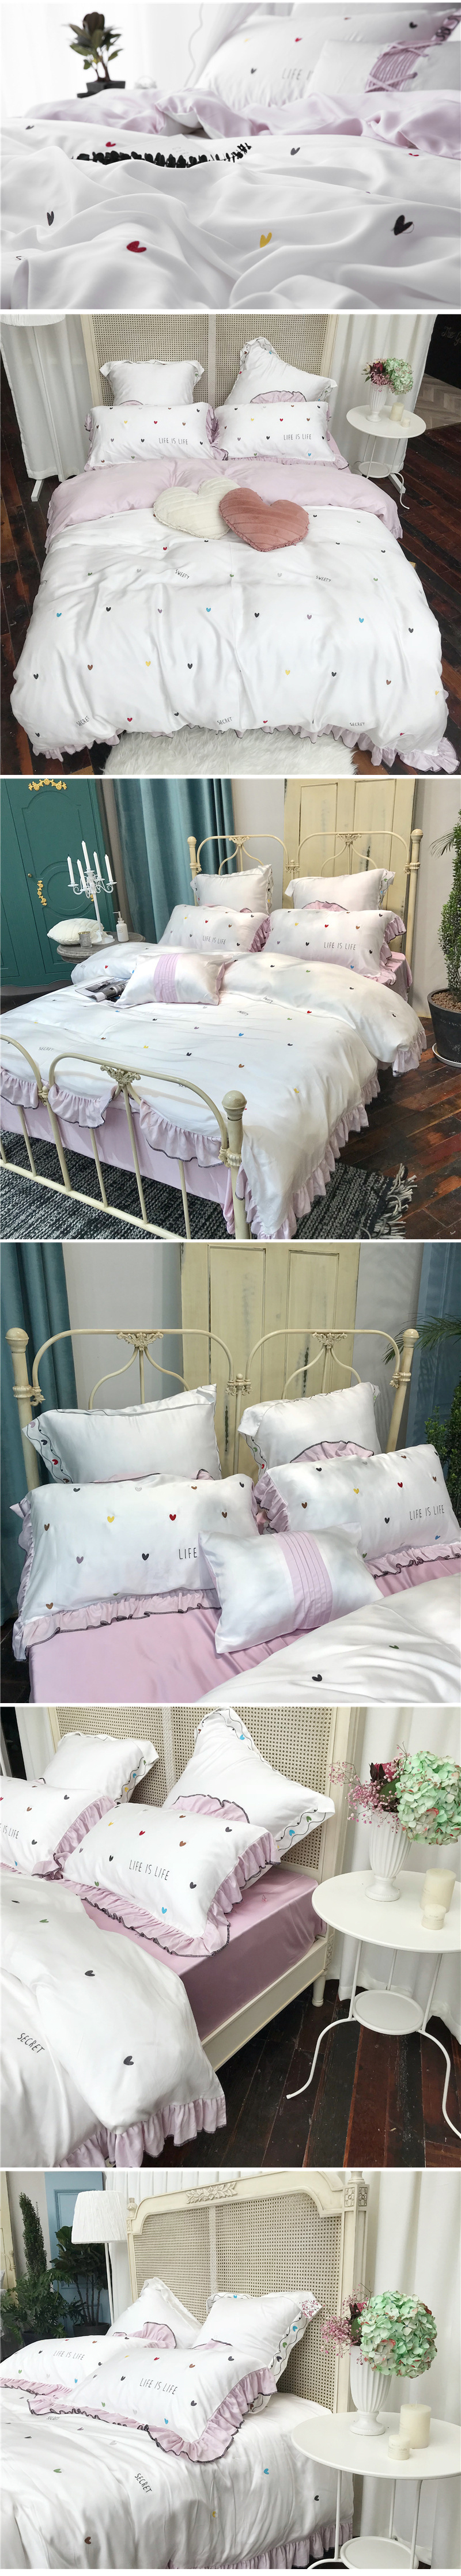 2018 comforter bedding sets 60s tencel coon coon bed sheets small fresh embroidery wedding bed cover housse de couee 5